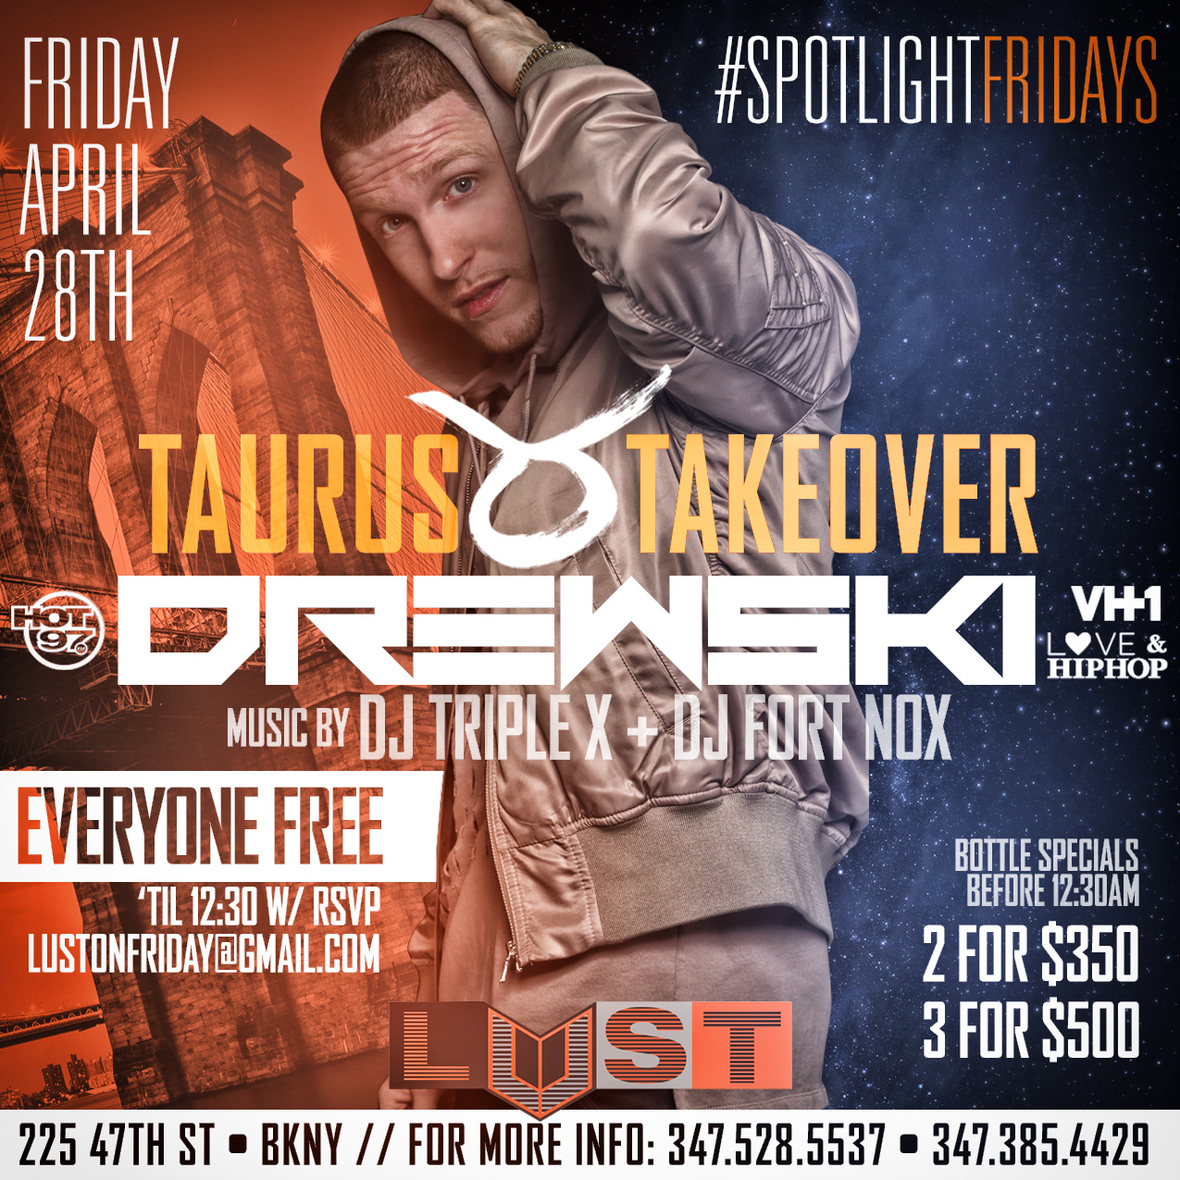 #SpotlightFridays @ Club Lust